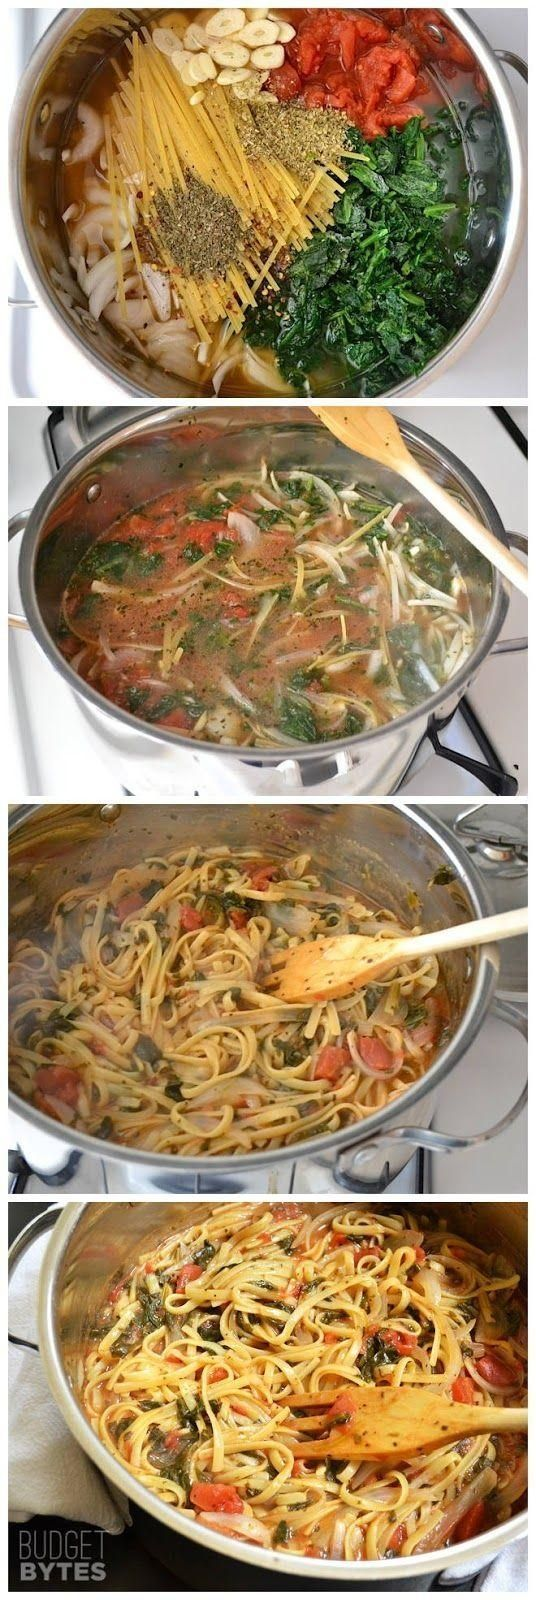 Italian Wonderpot. Anything you can cook all in one pot is fine by me!